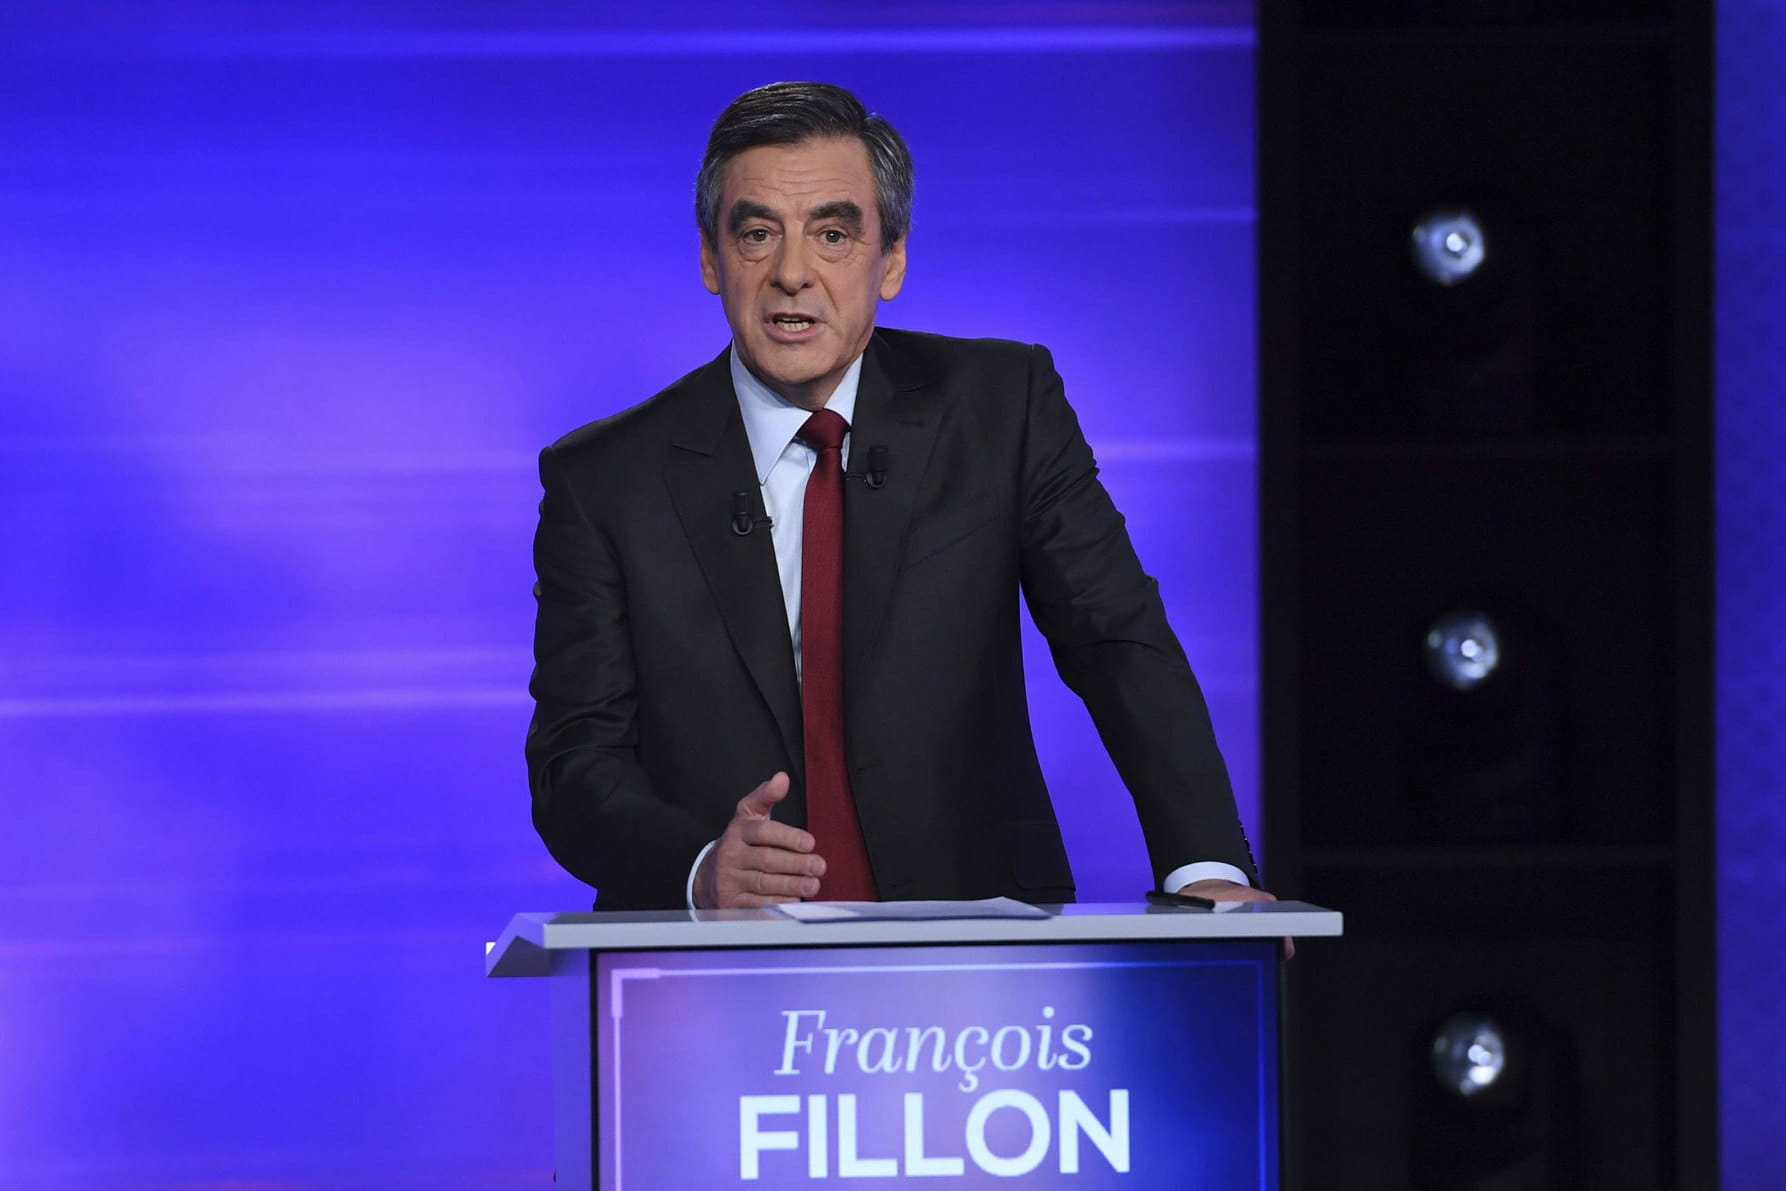 francois fillon est il pour ou contre l 39 avortement. Black Bedroom Furniture Sets. Home Design Ideas